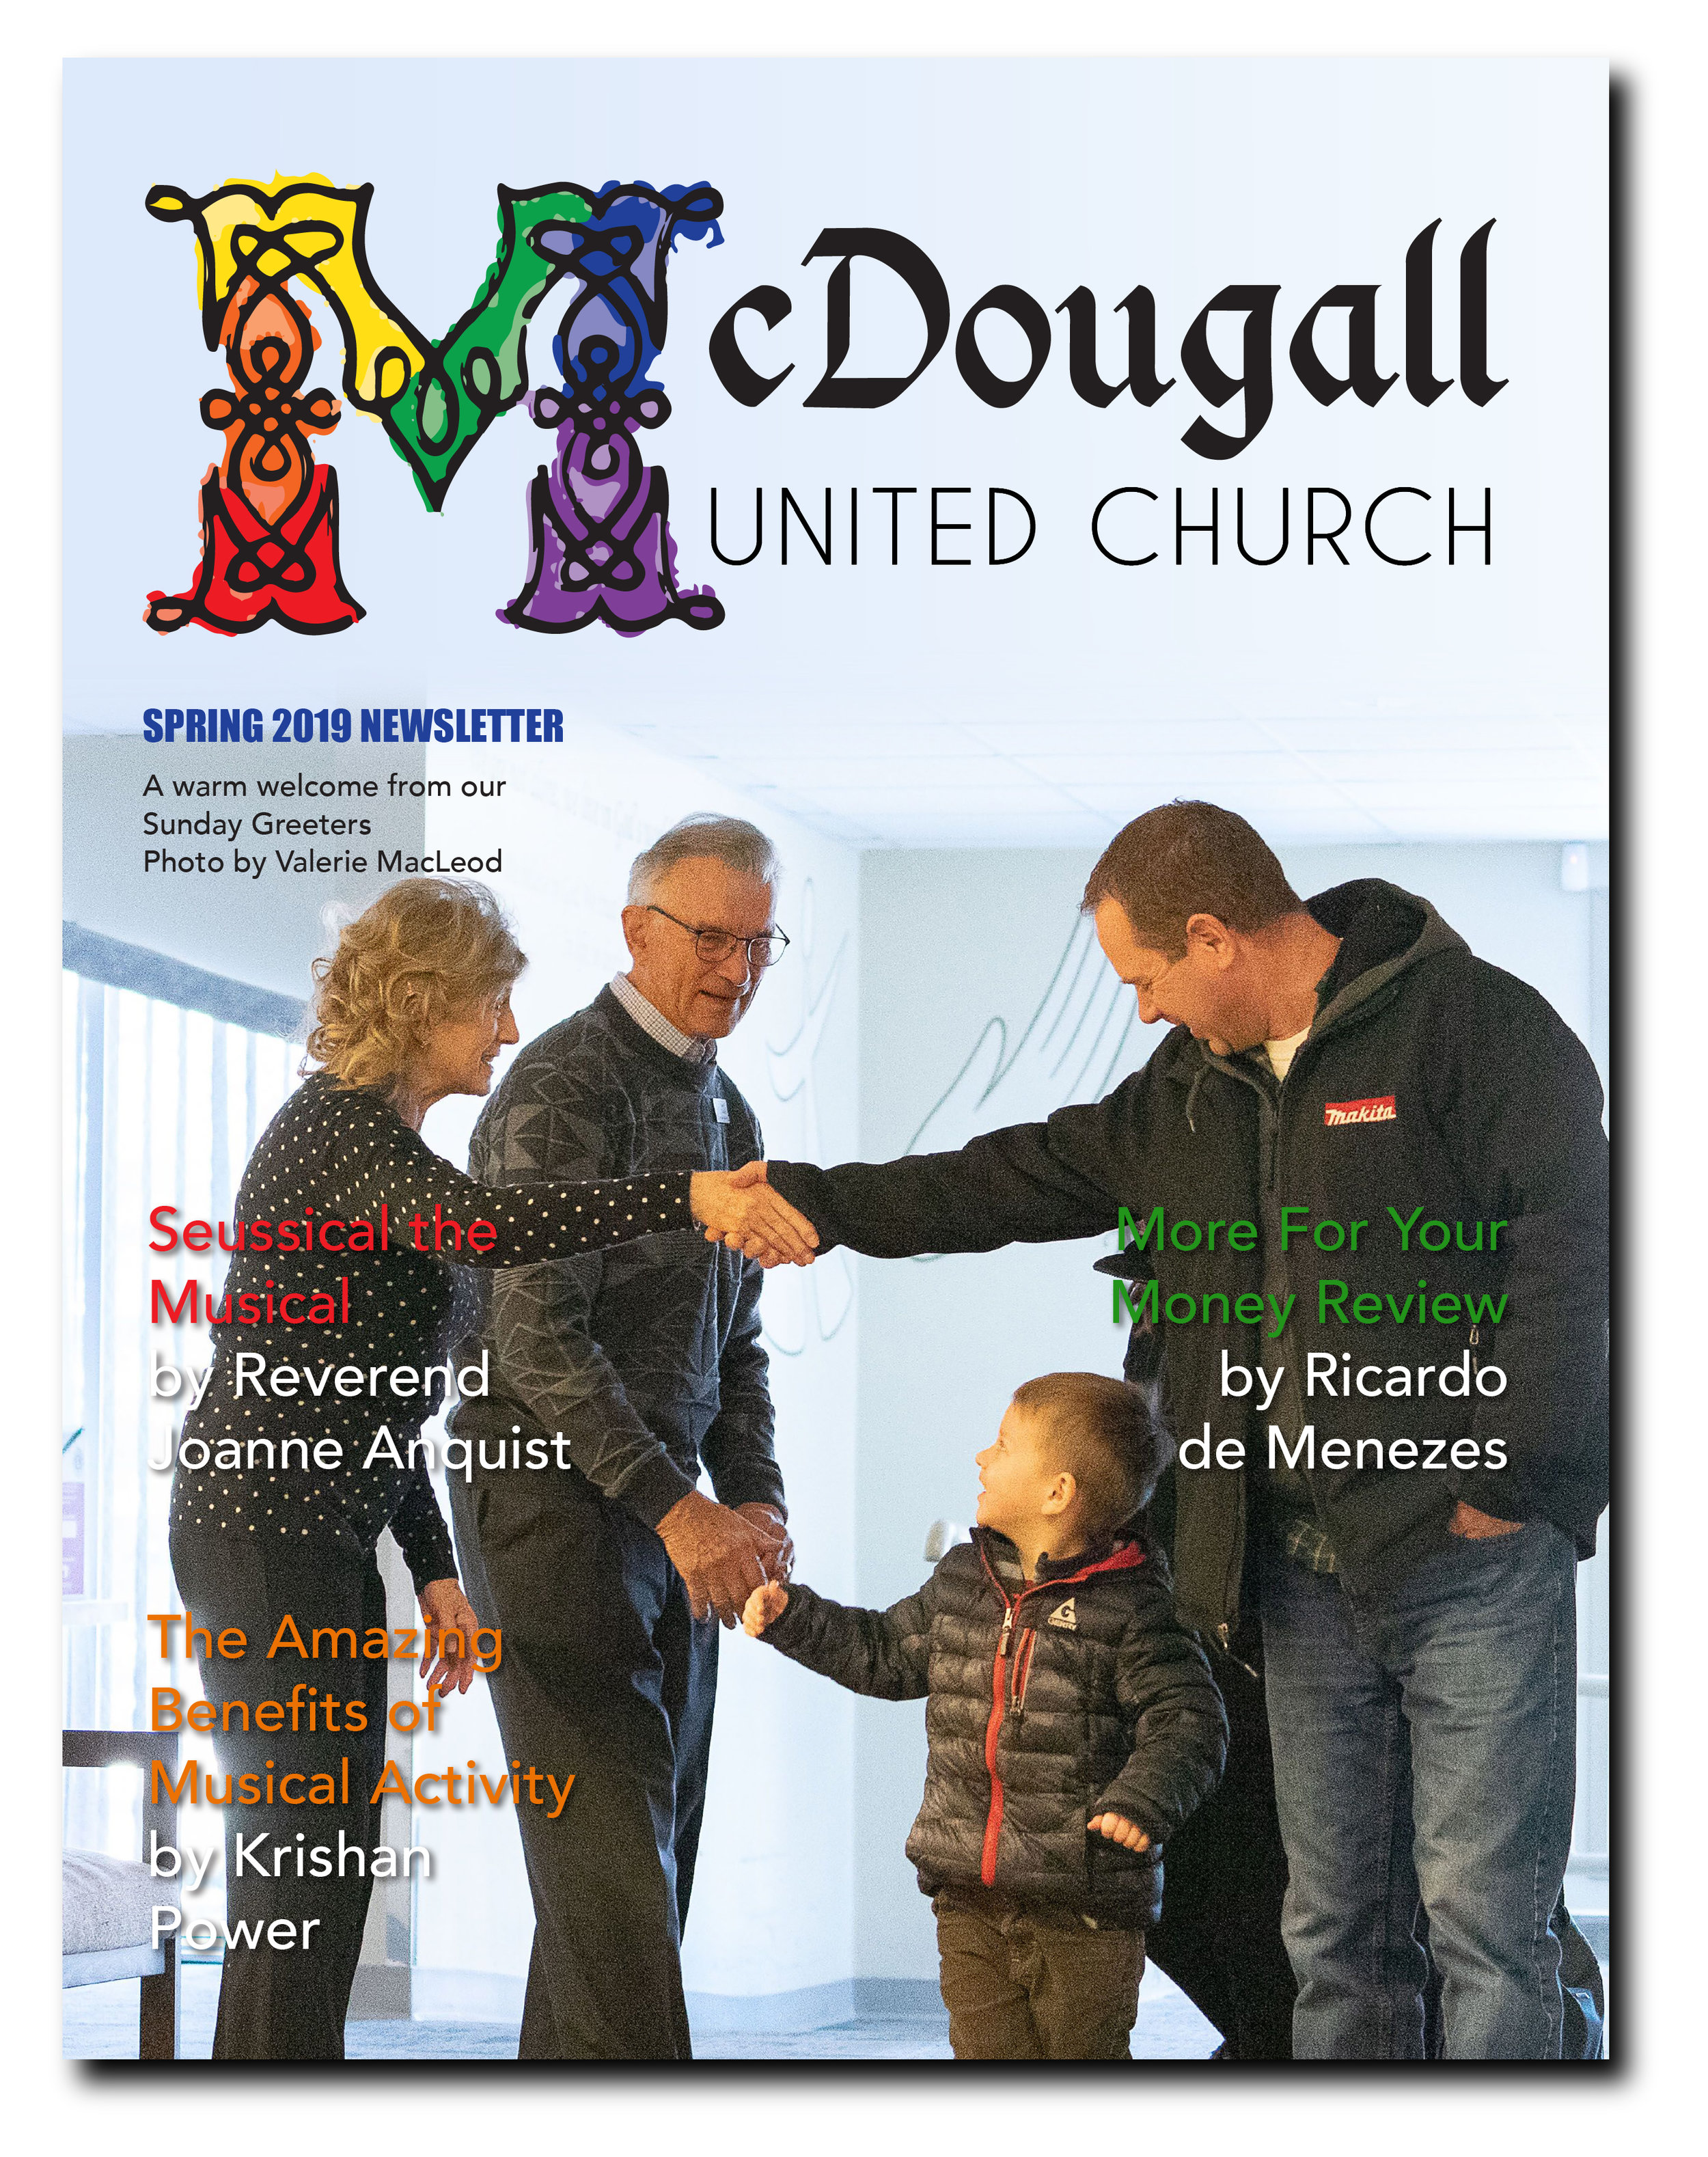 Spring 2019 Newsletter - CLICK HERE to download the Newsletter